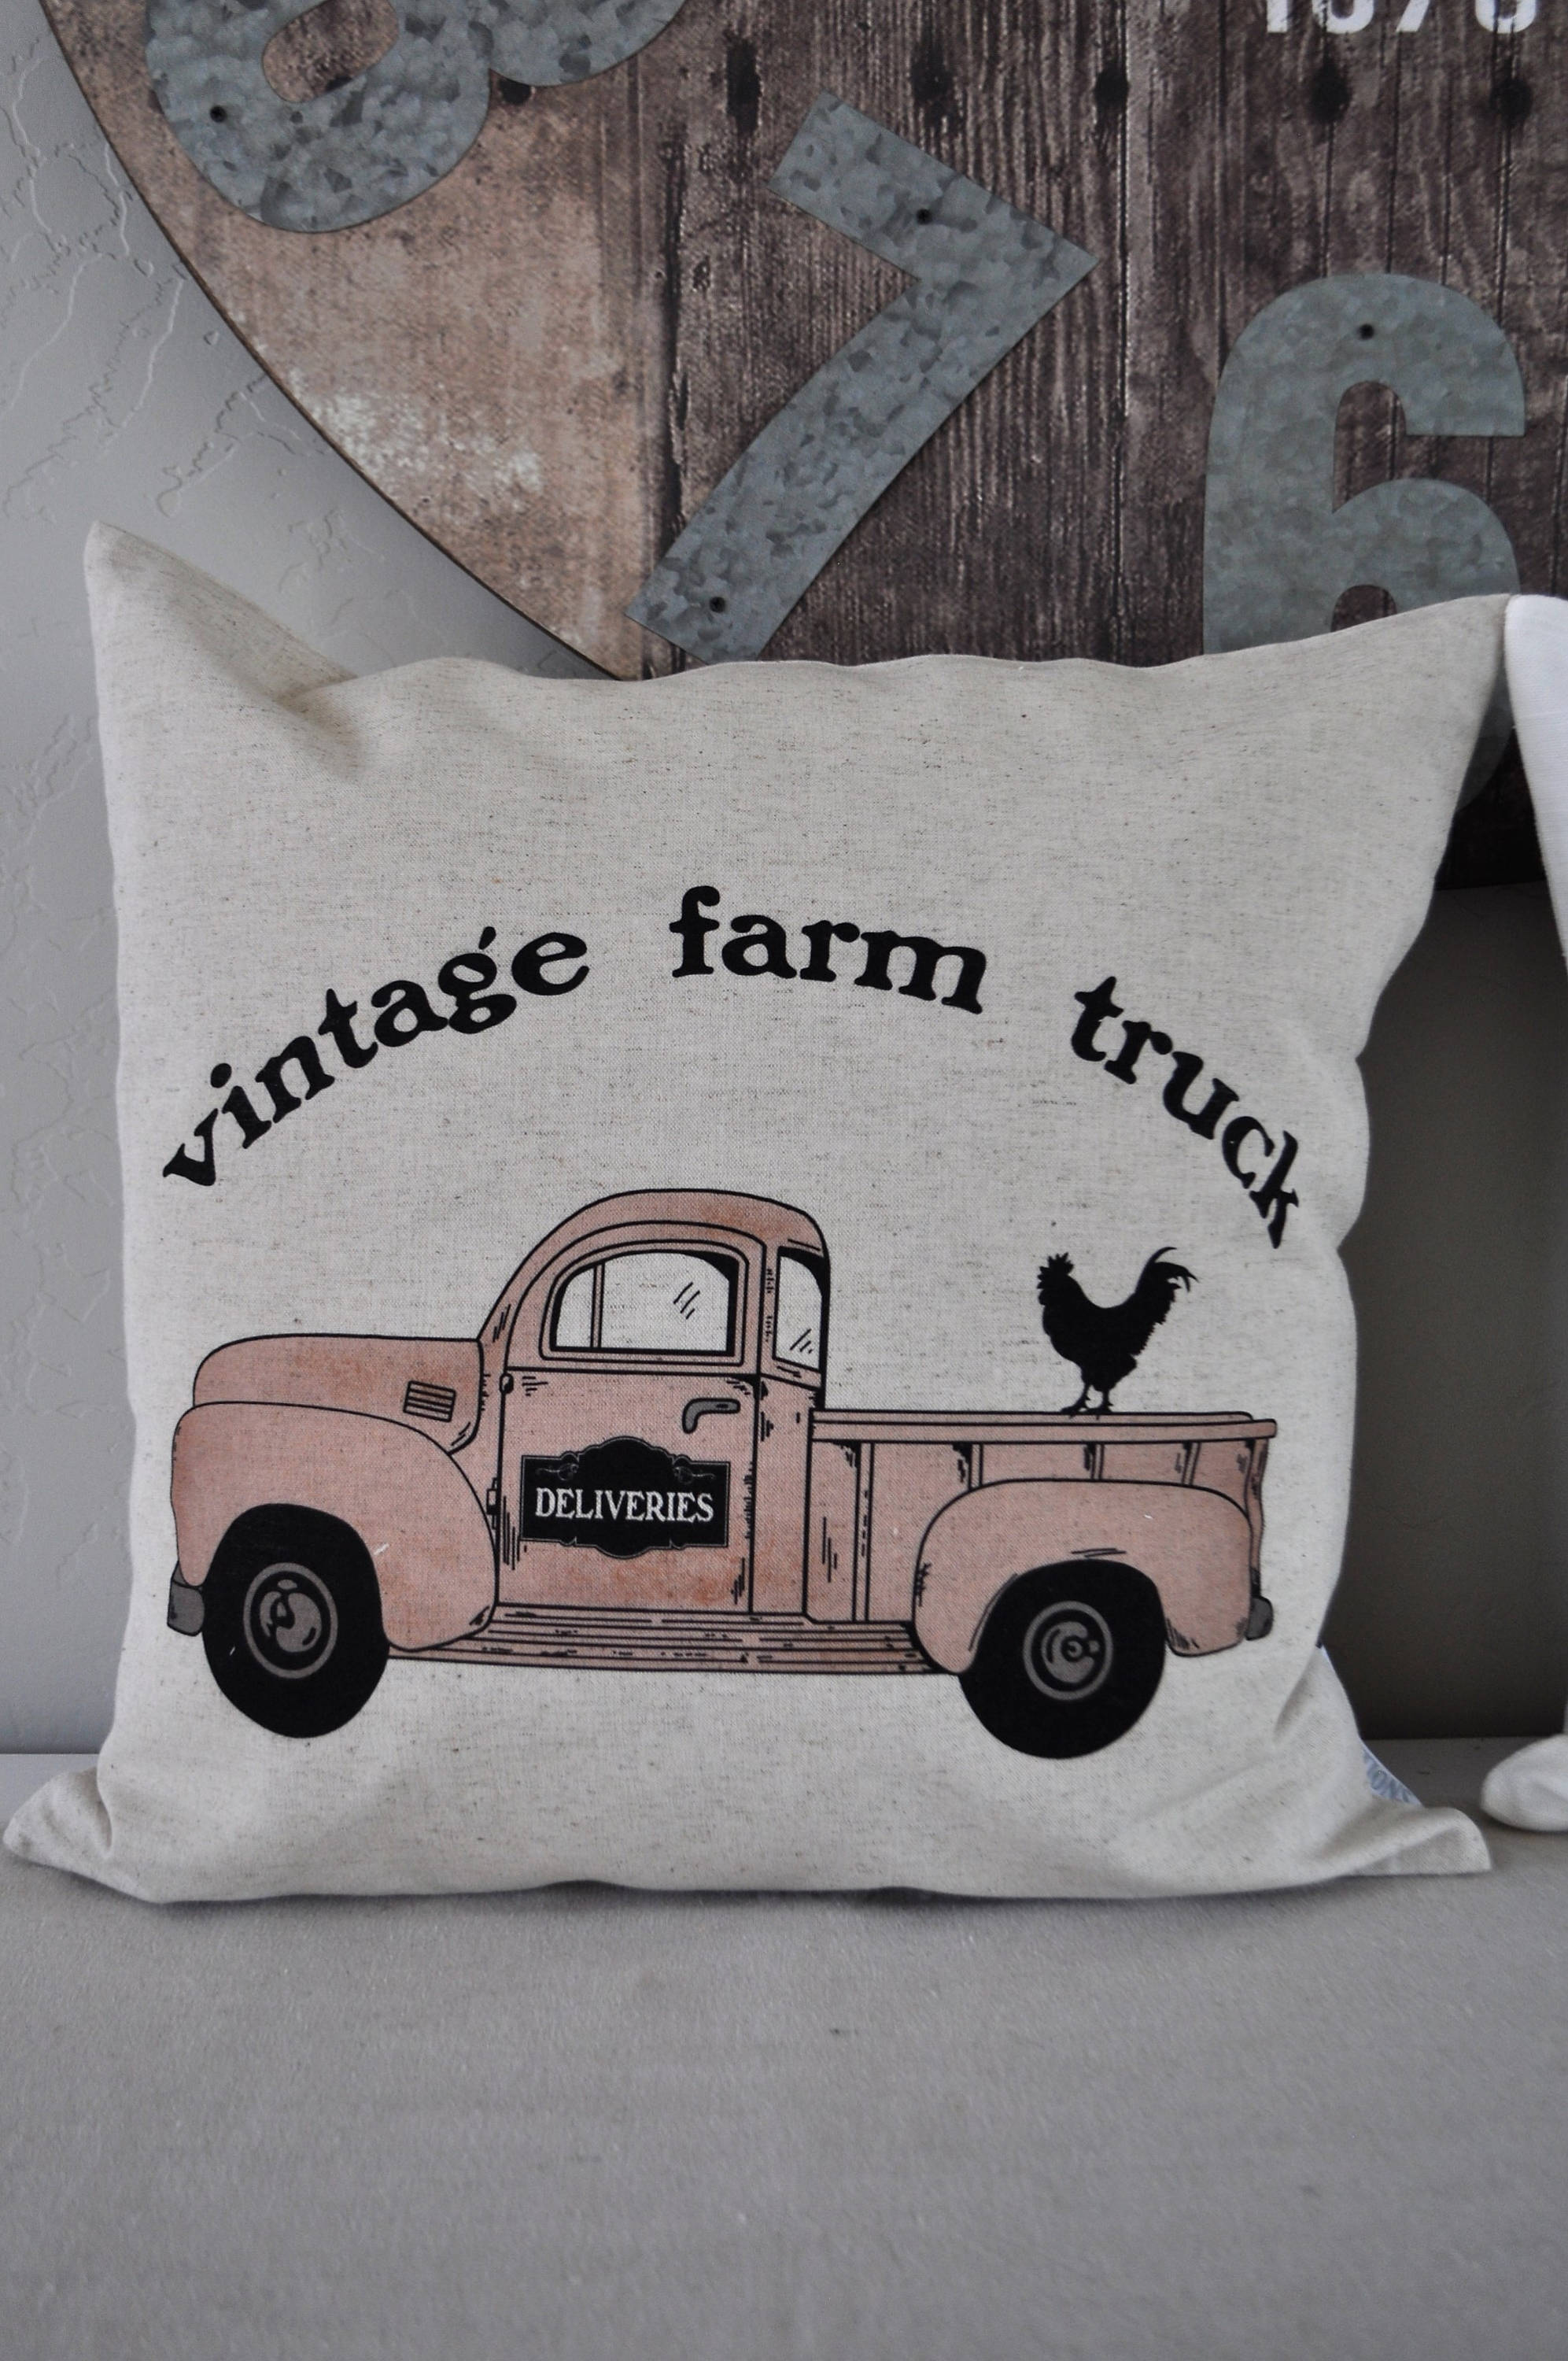 SALE, Vintage Farm Truck,Pillow Cover, truck Pillow Cover, Spring pillow cover, Summer Pillow Cover, 18x18